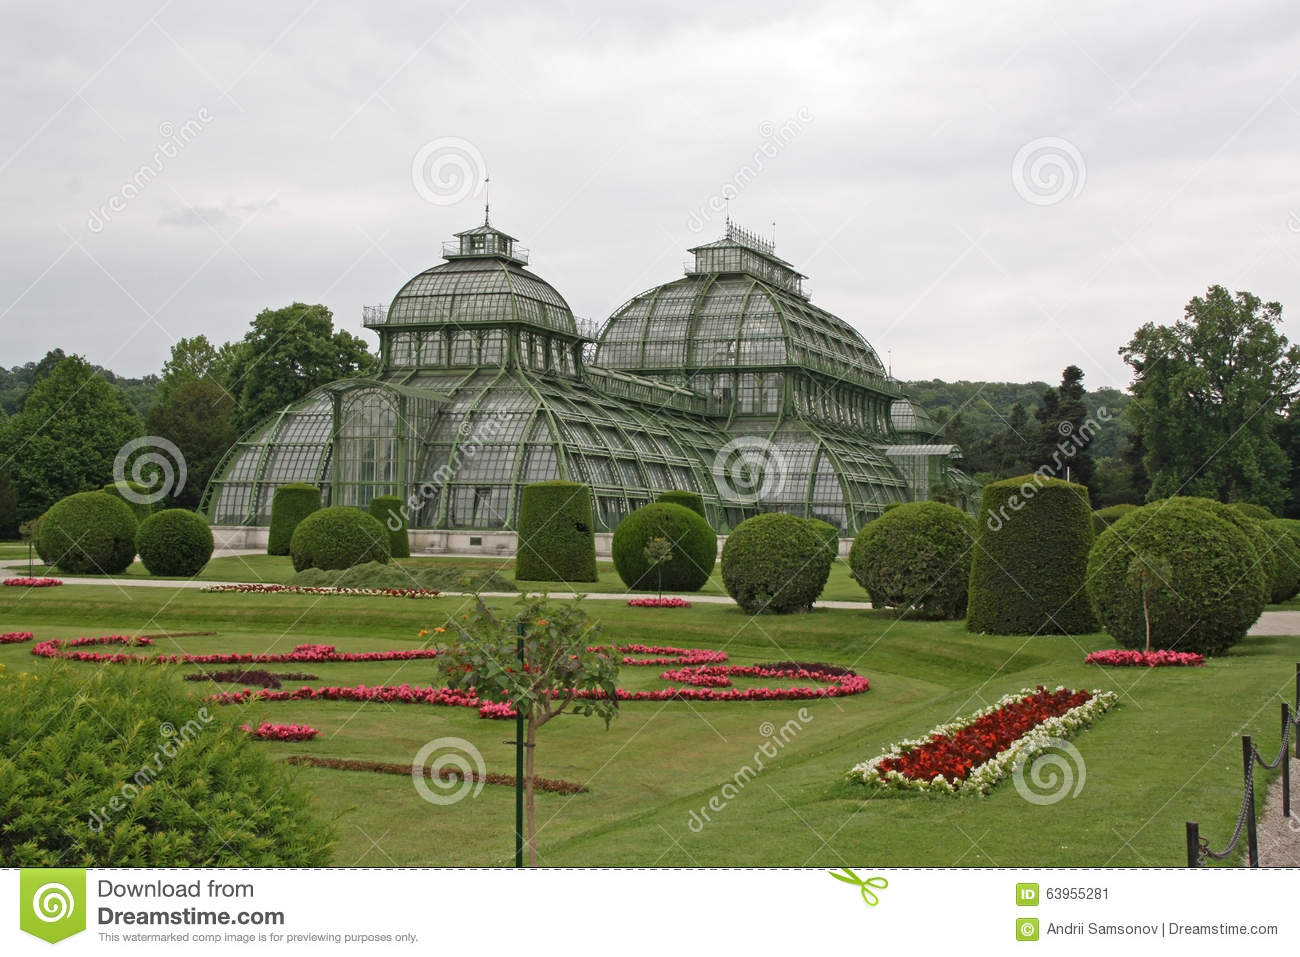 Botanical garden near schonbrunn palace in vienna stock photo image 63955281 for What time does the botanical gardens close